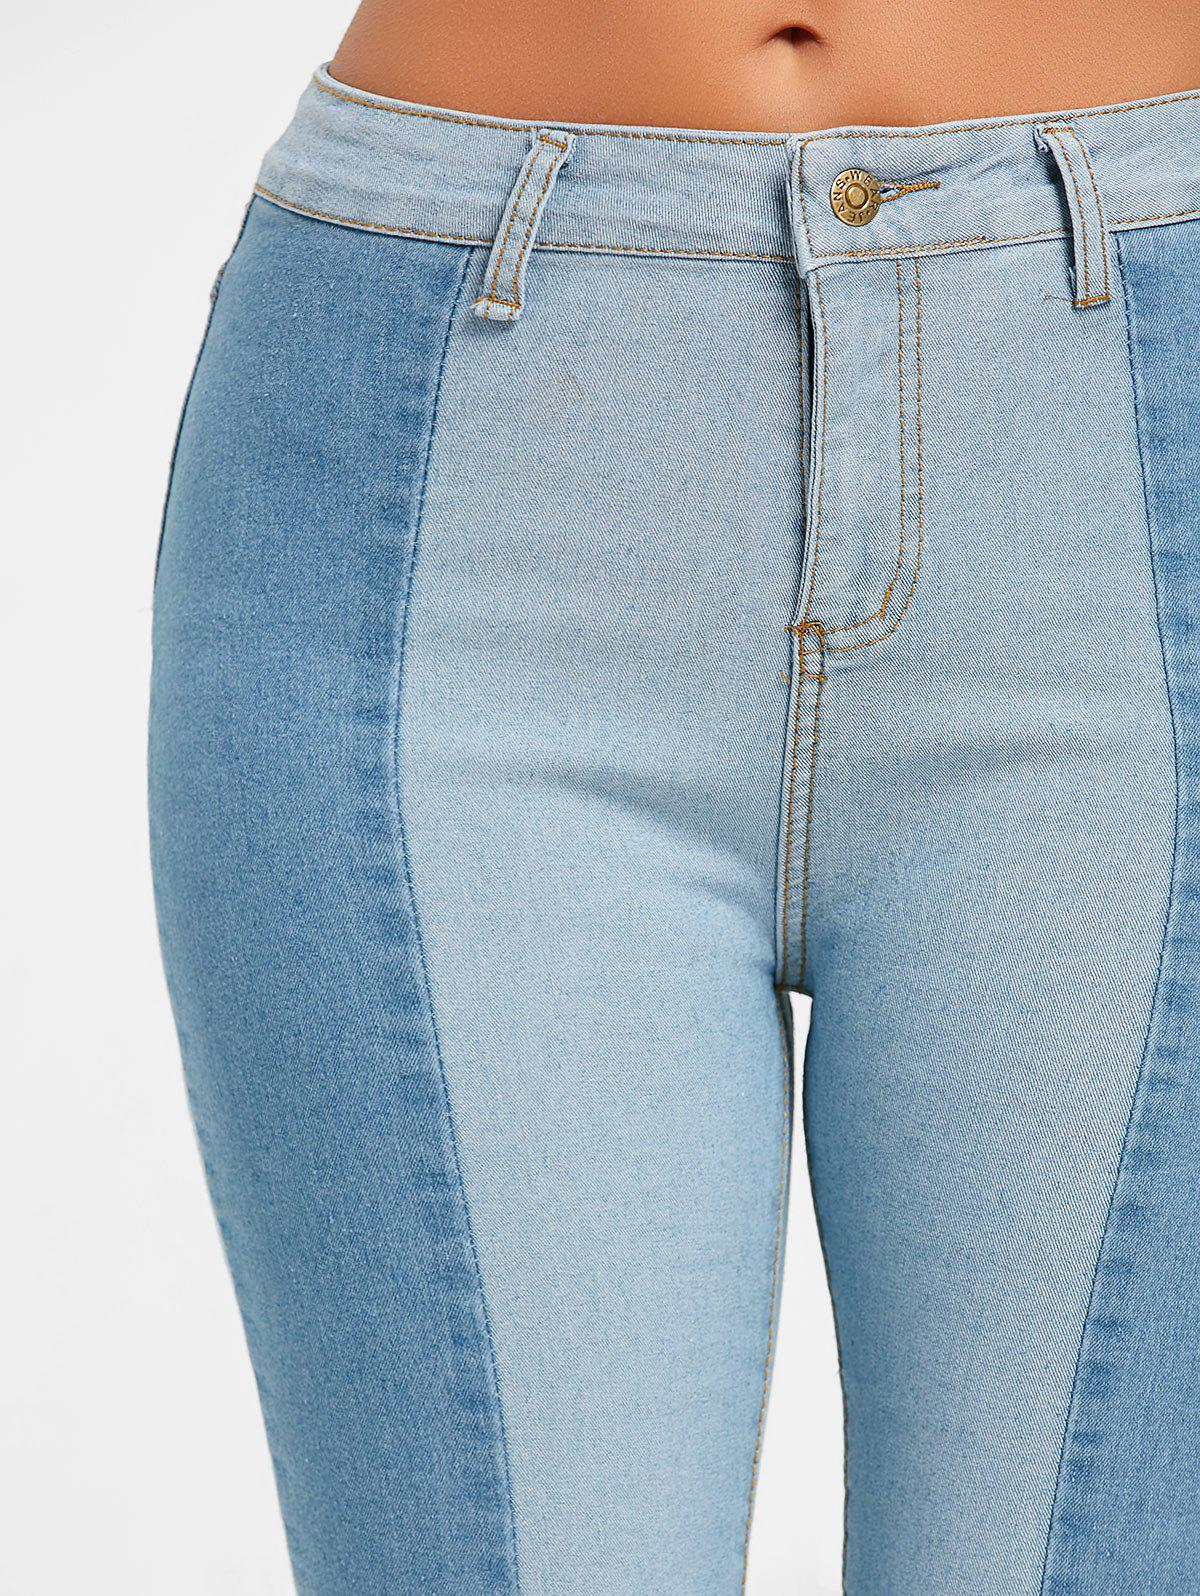 Skinny Two Tone Color Denim Jeans - CLOUDY L